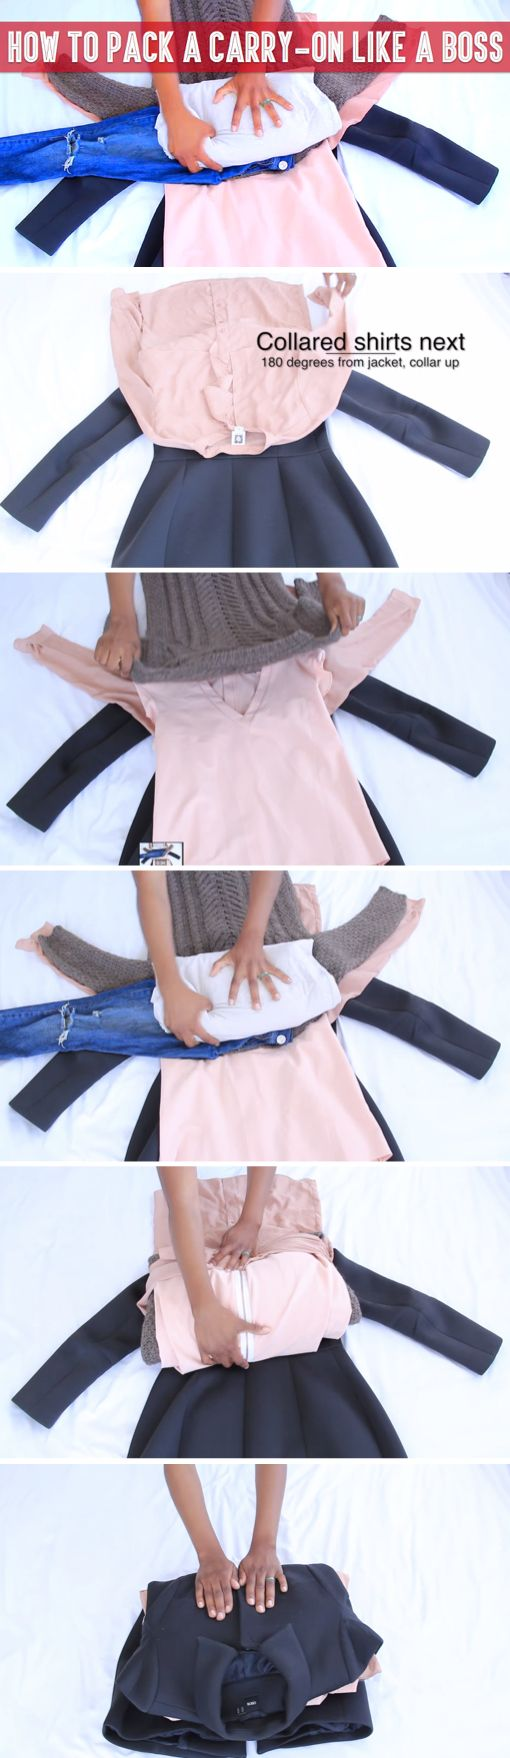 Check Out This Life Hack And You Will Never Worry About Forgetting Your Clothes At Home Again!